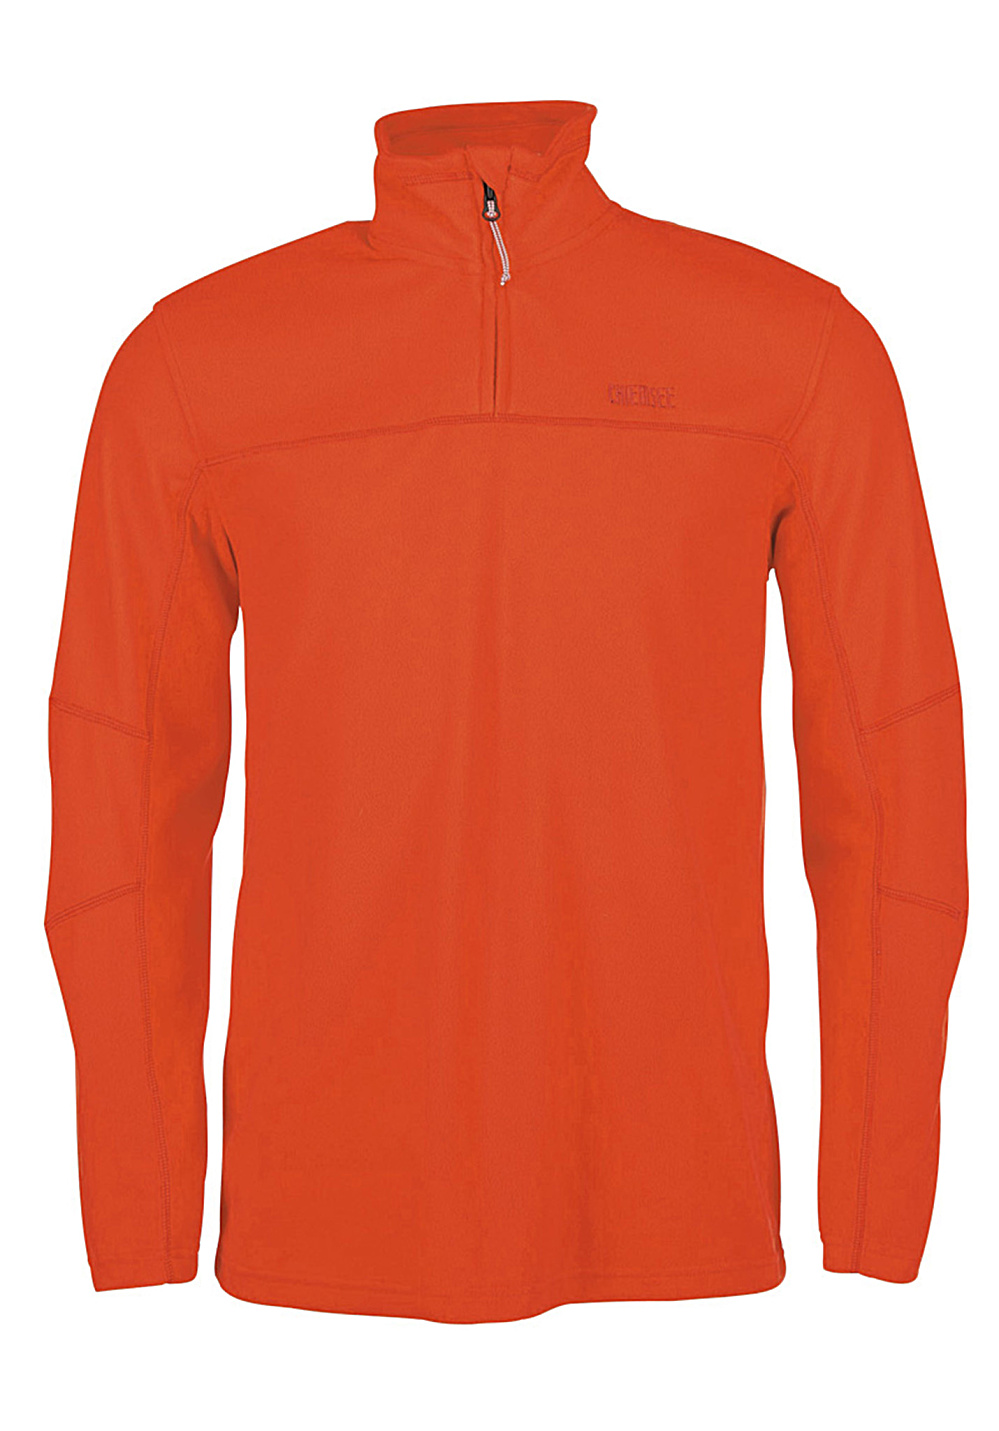 Chiemsee Haroon 2 - Outdoorpullover für Herren - Orange - M